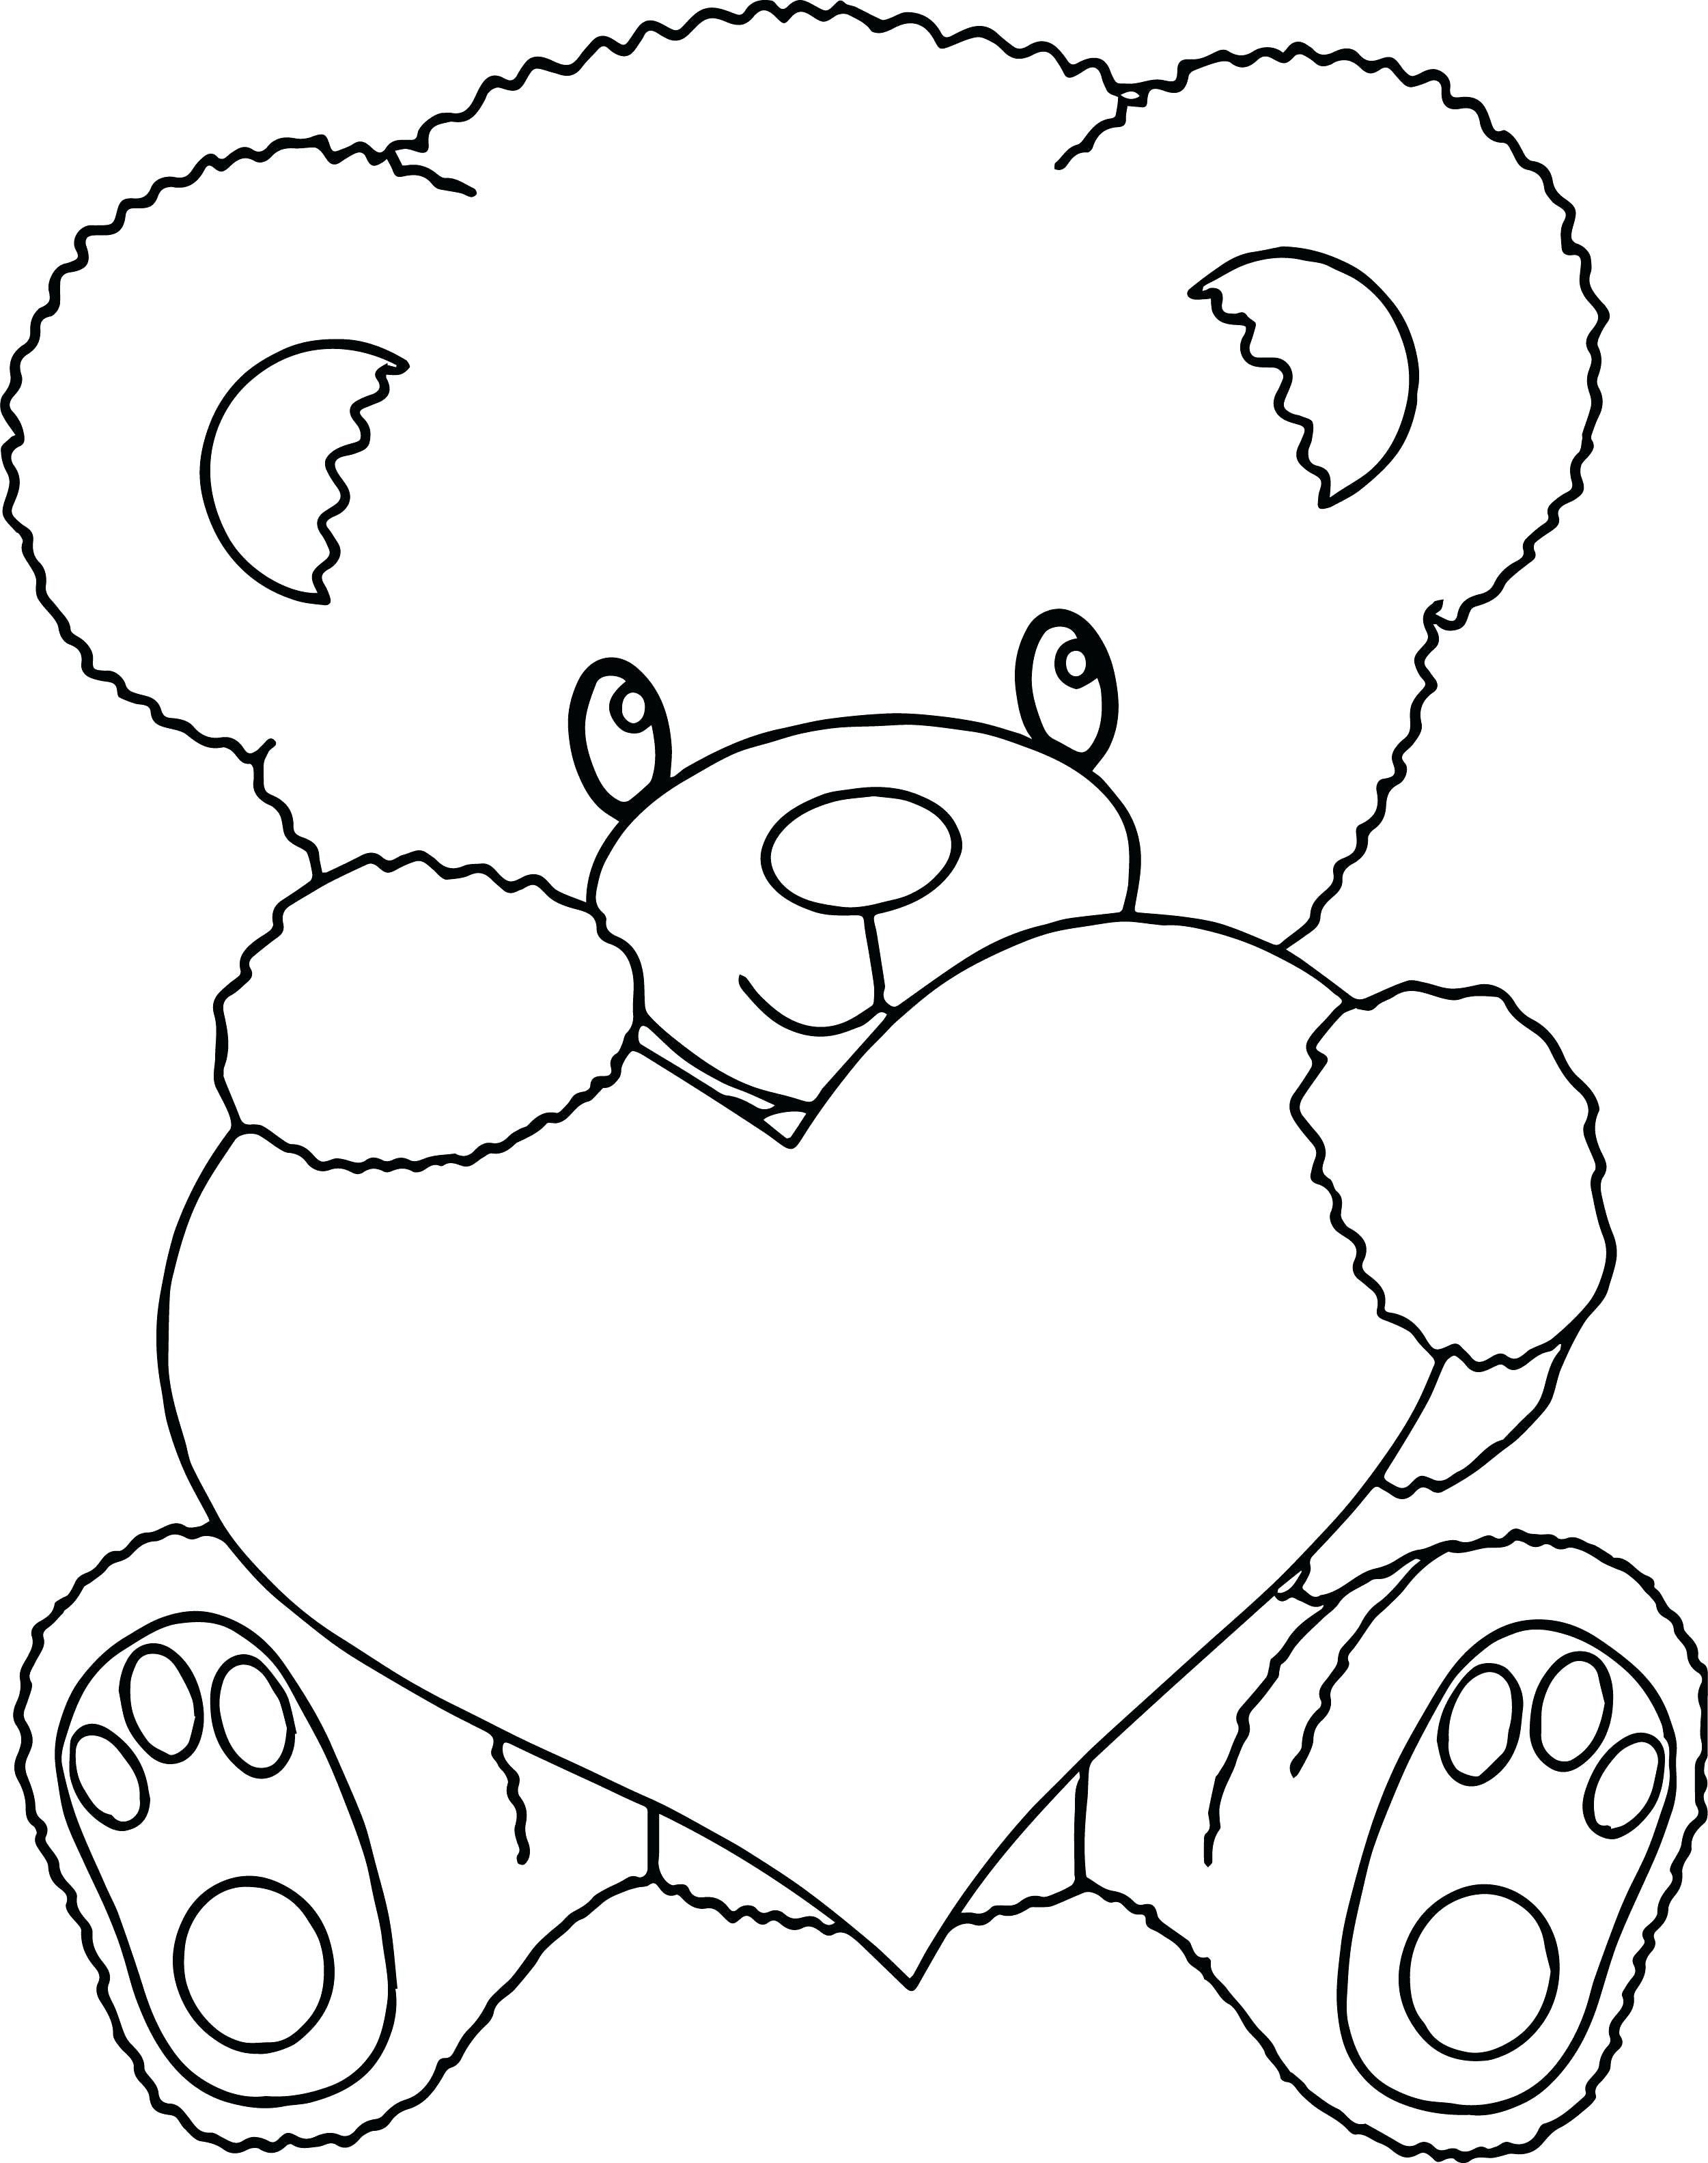 Teddy Bear Coloring Pages Inspirational